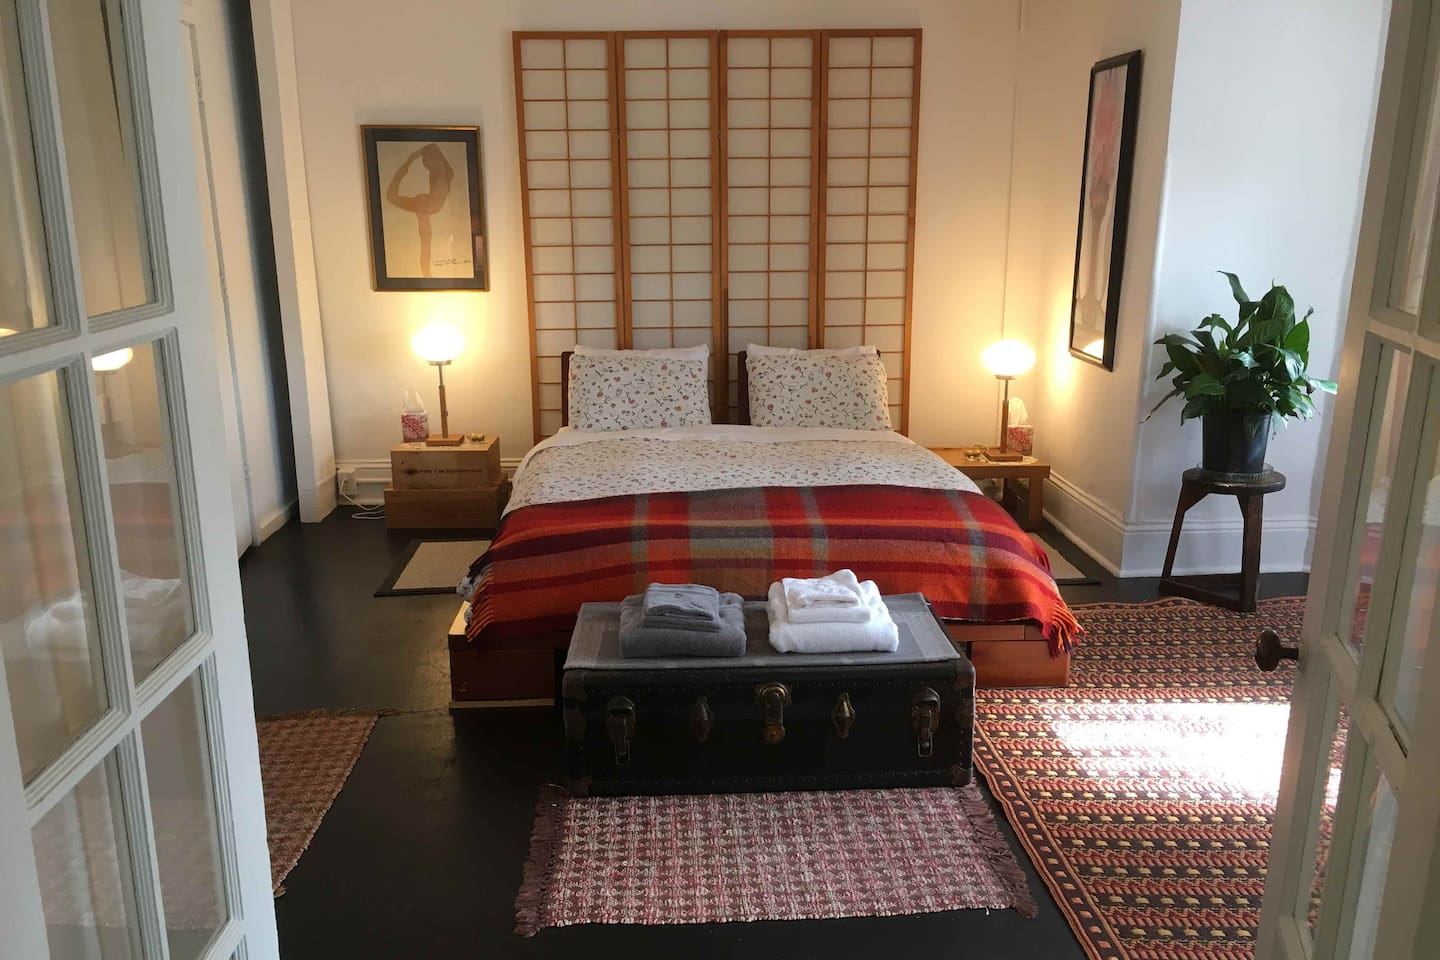 Spacious bedroom with Japanese platform bed and new comfortable organic mattress, french doors, walk in closet and en-suite bathroom.